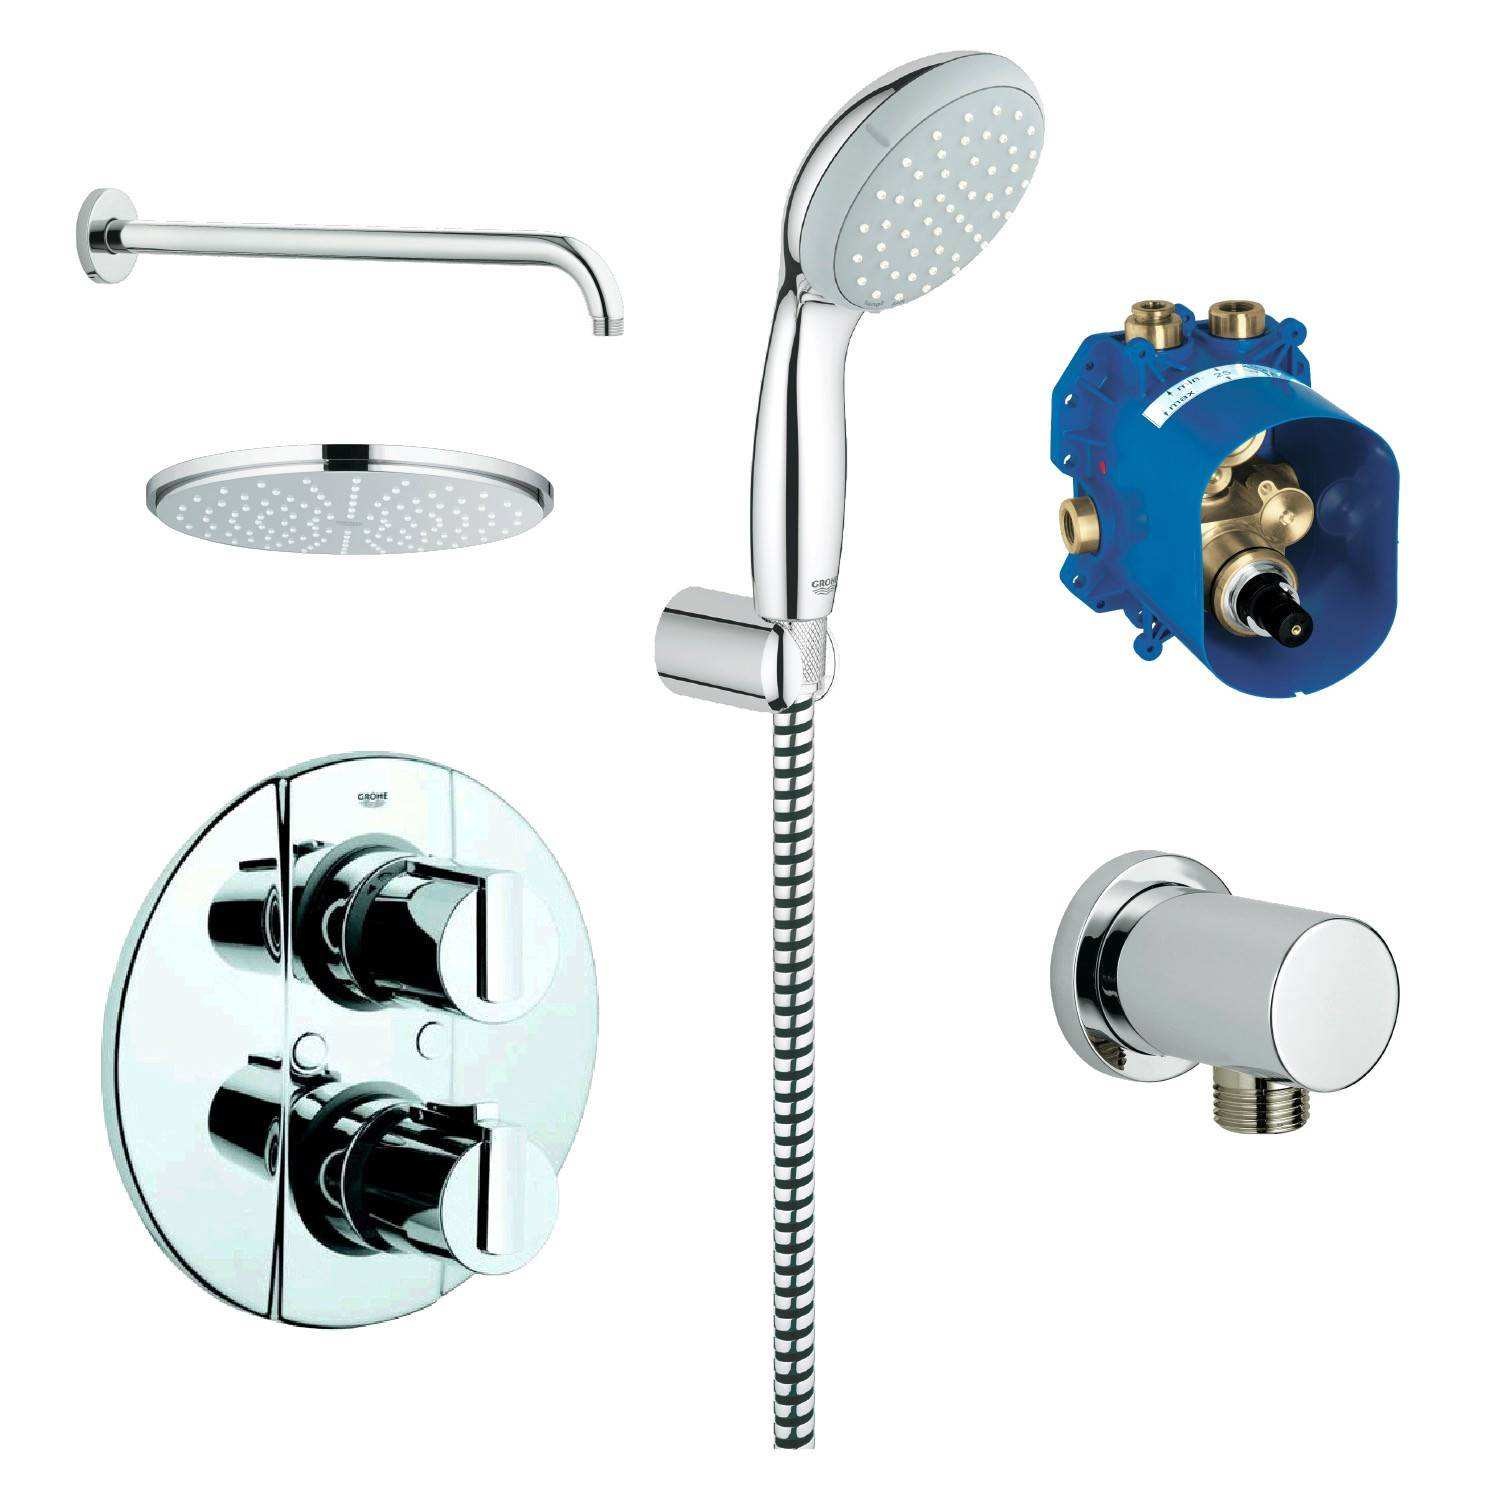 Thermostat Dusche Grohe thermostat Dusche Excellent Awesome Bright and